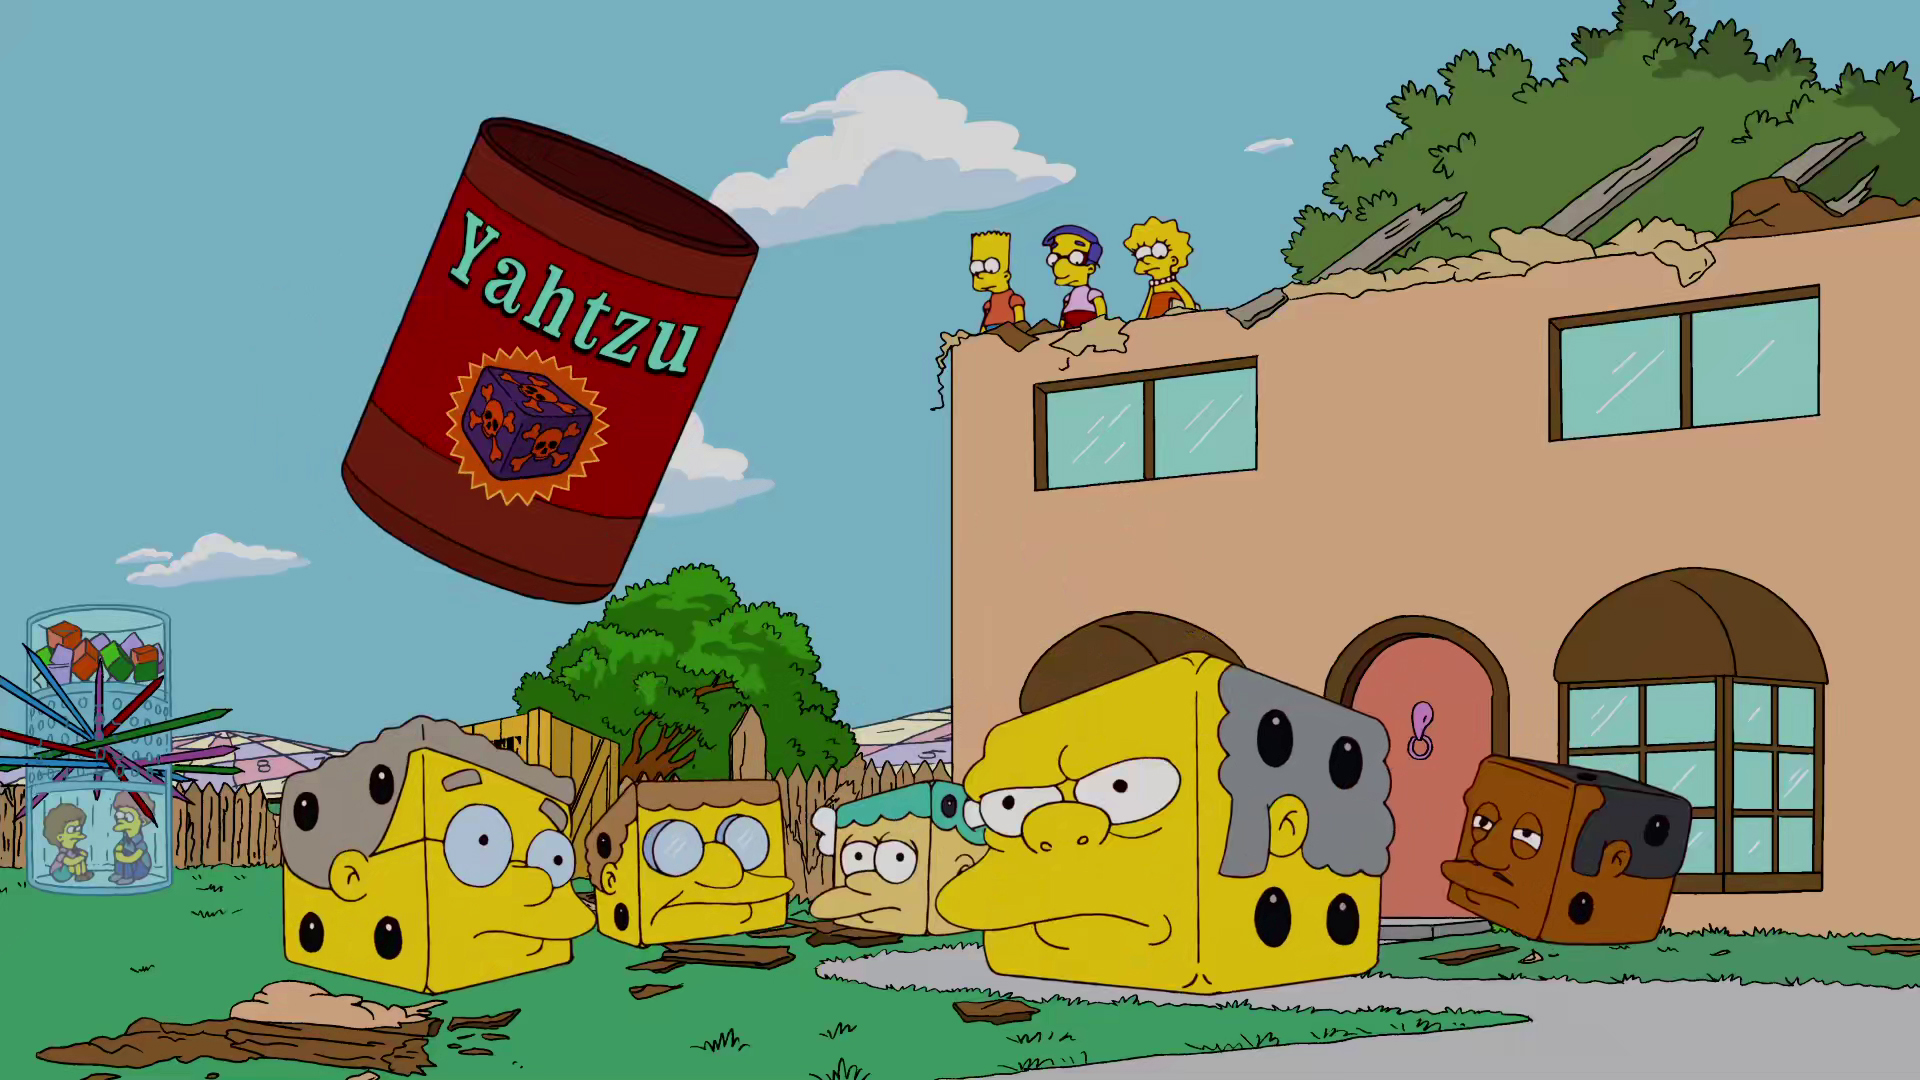 File:Yatzee simpsons.jpg